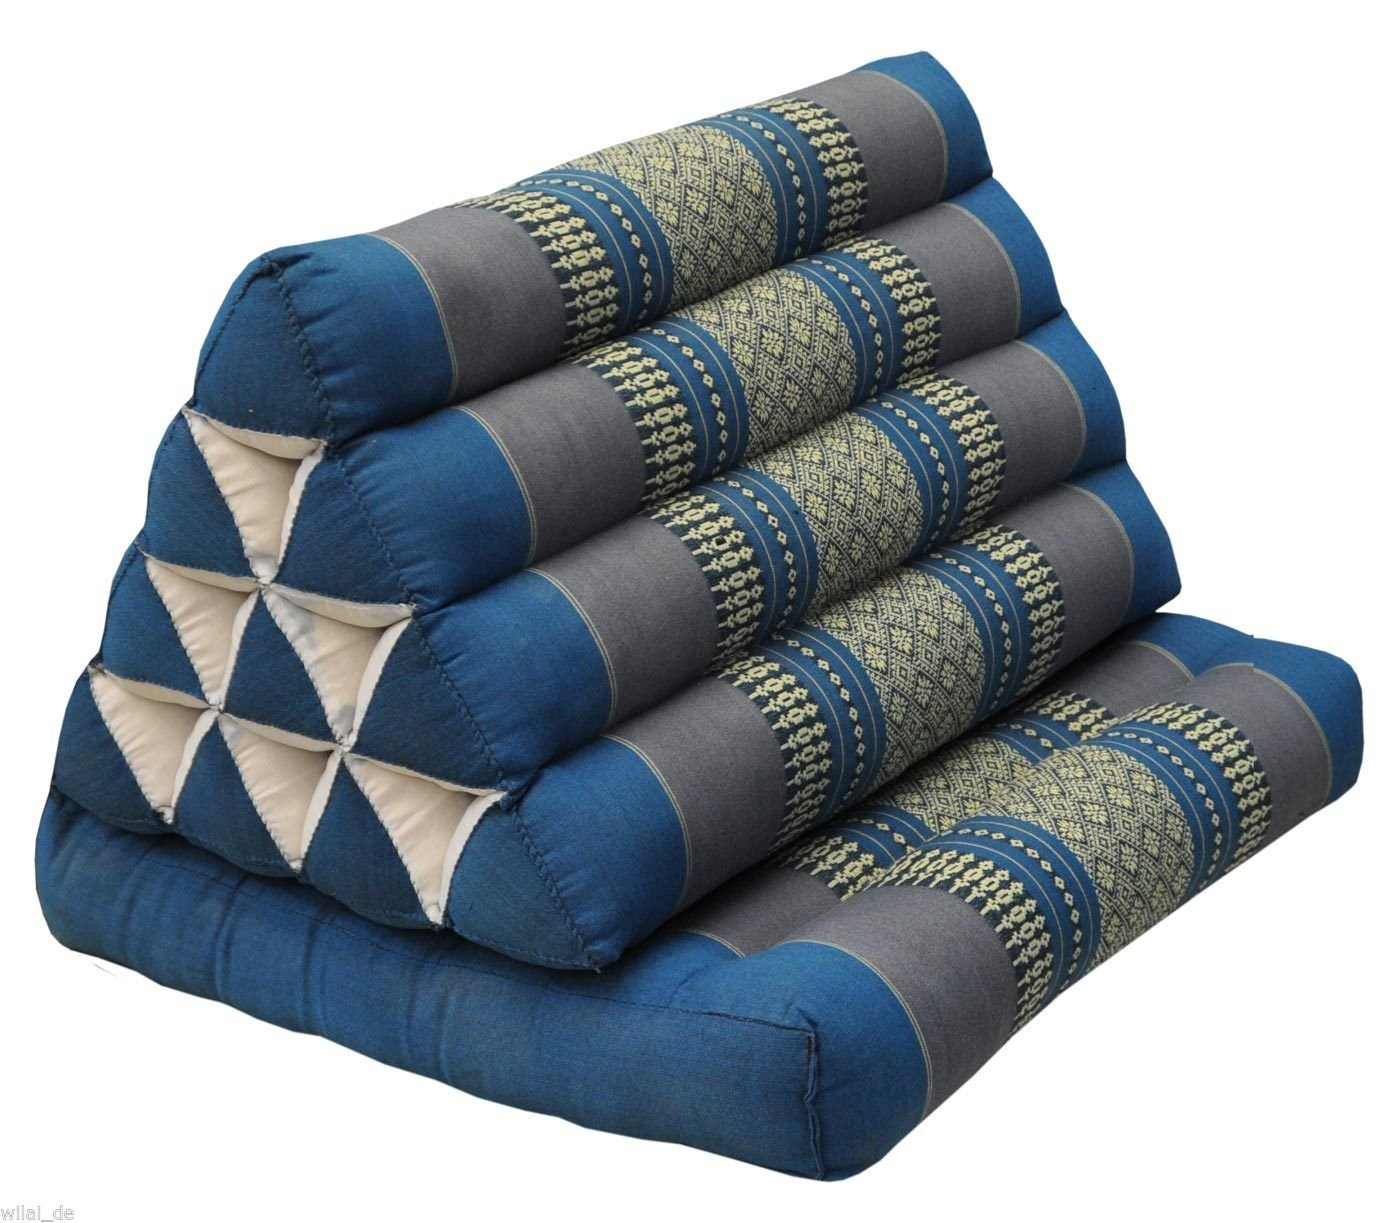 Tungyashop@thai Traditional Cushion 67x21x3 Inches Kapok Mattress (Sky Blue, 1 Fold) by Thai